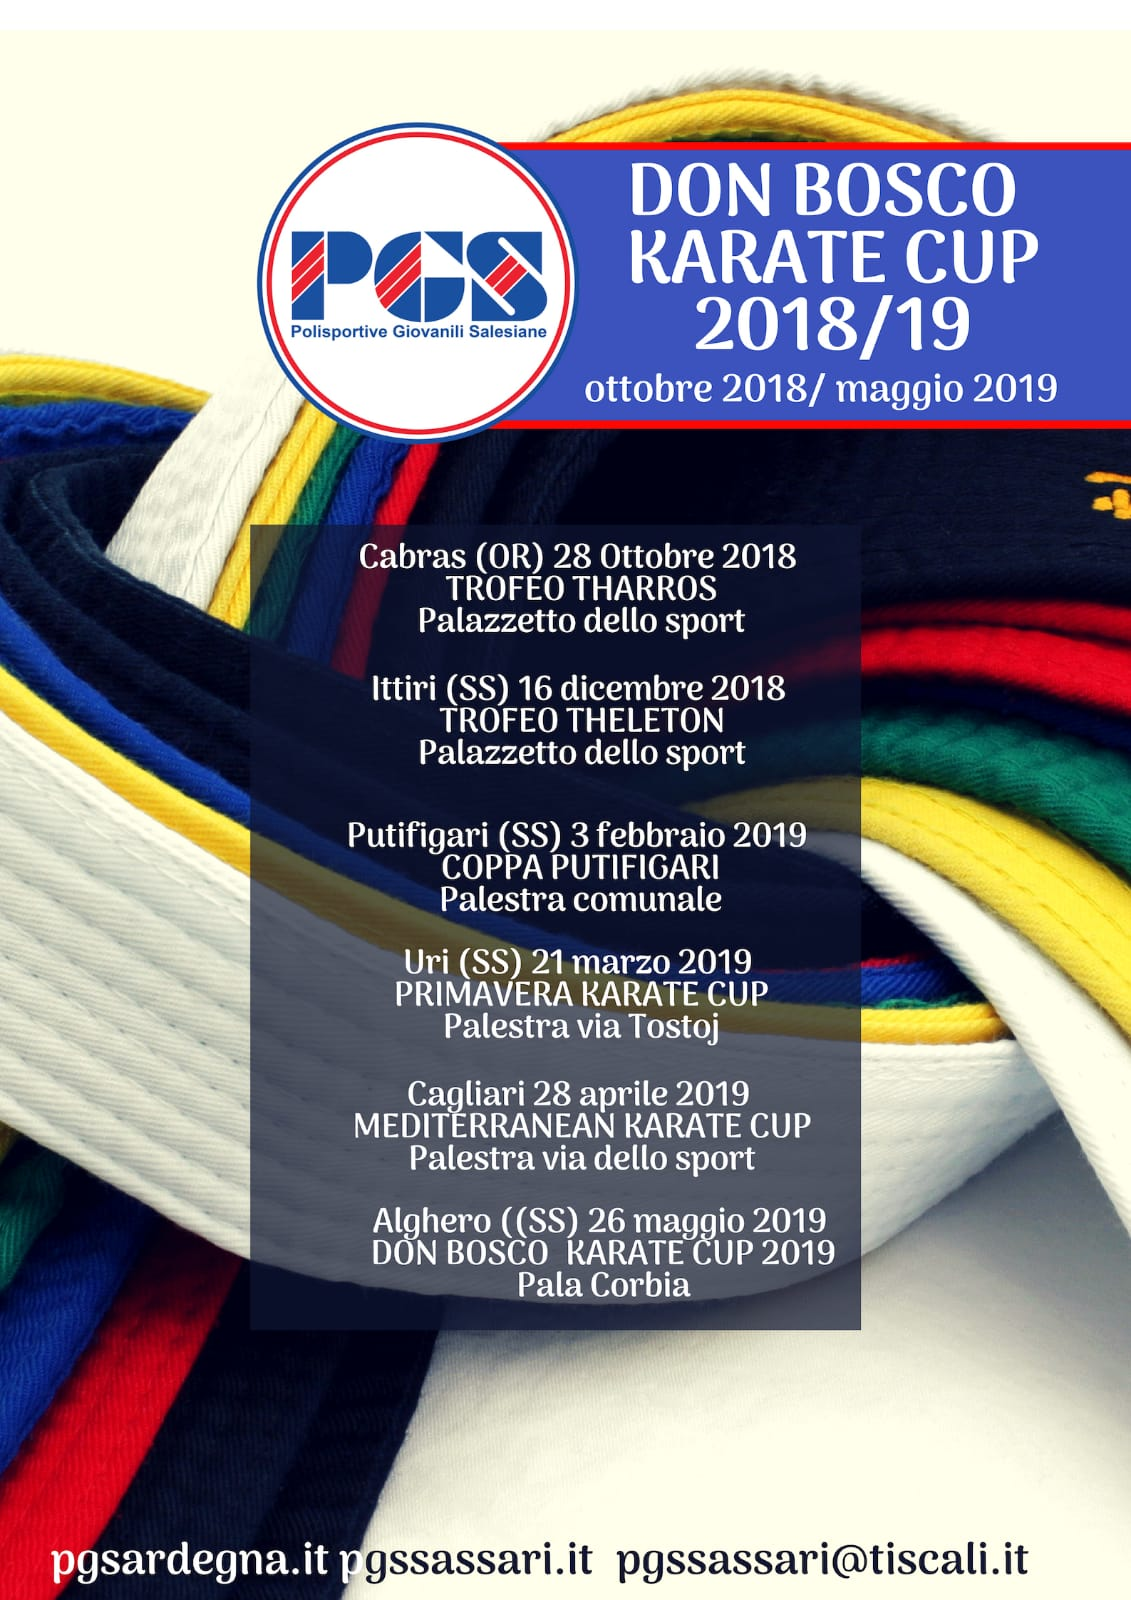 DON BOSCO KARATE CUP 2018-2019